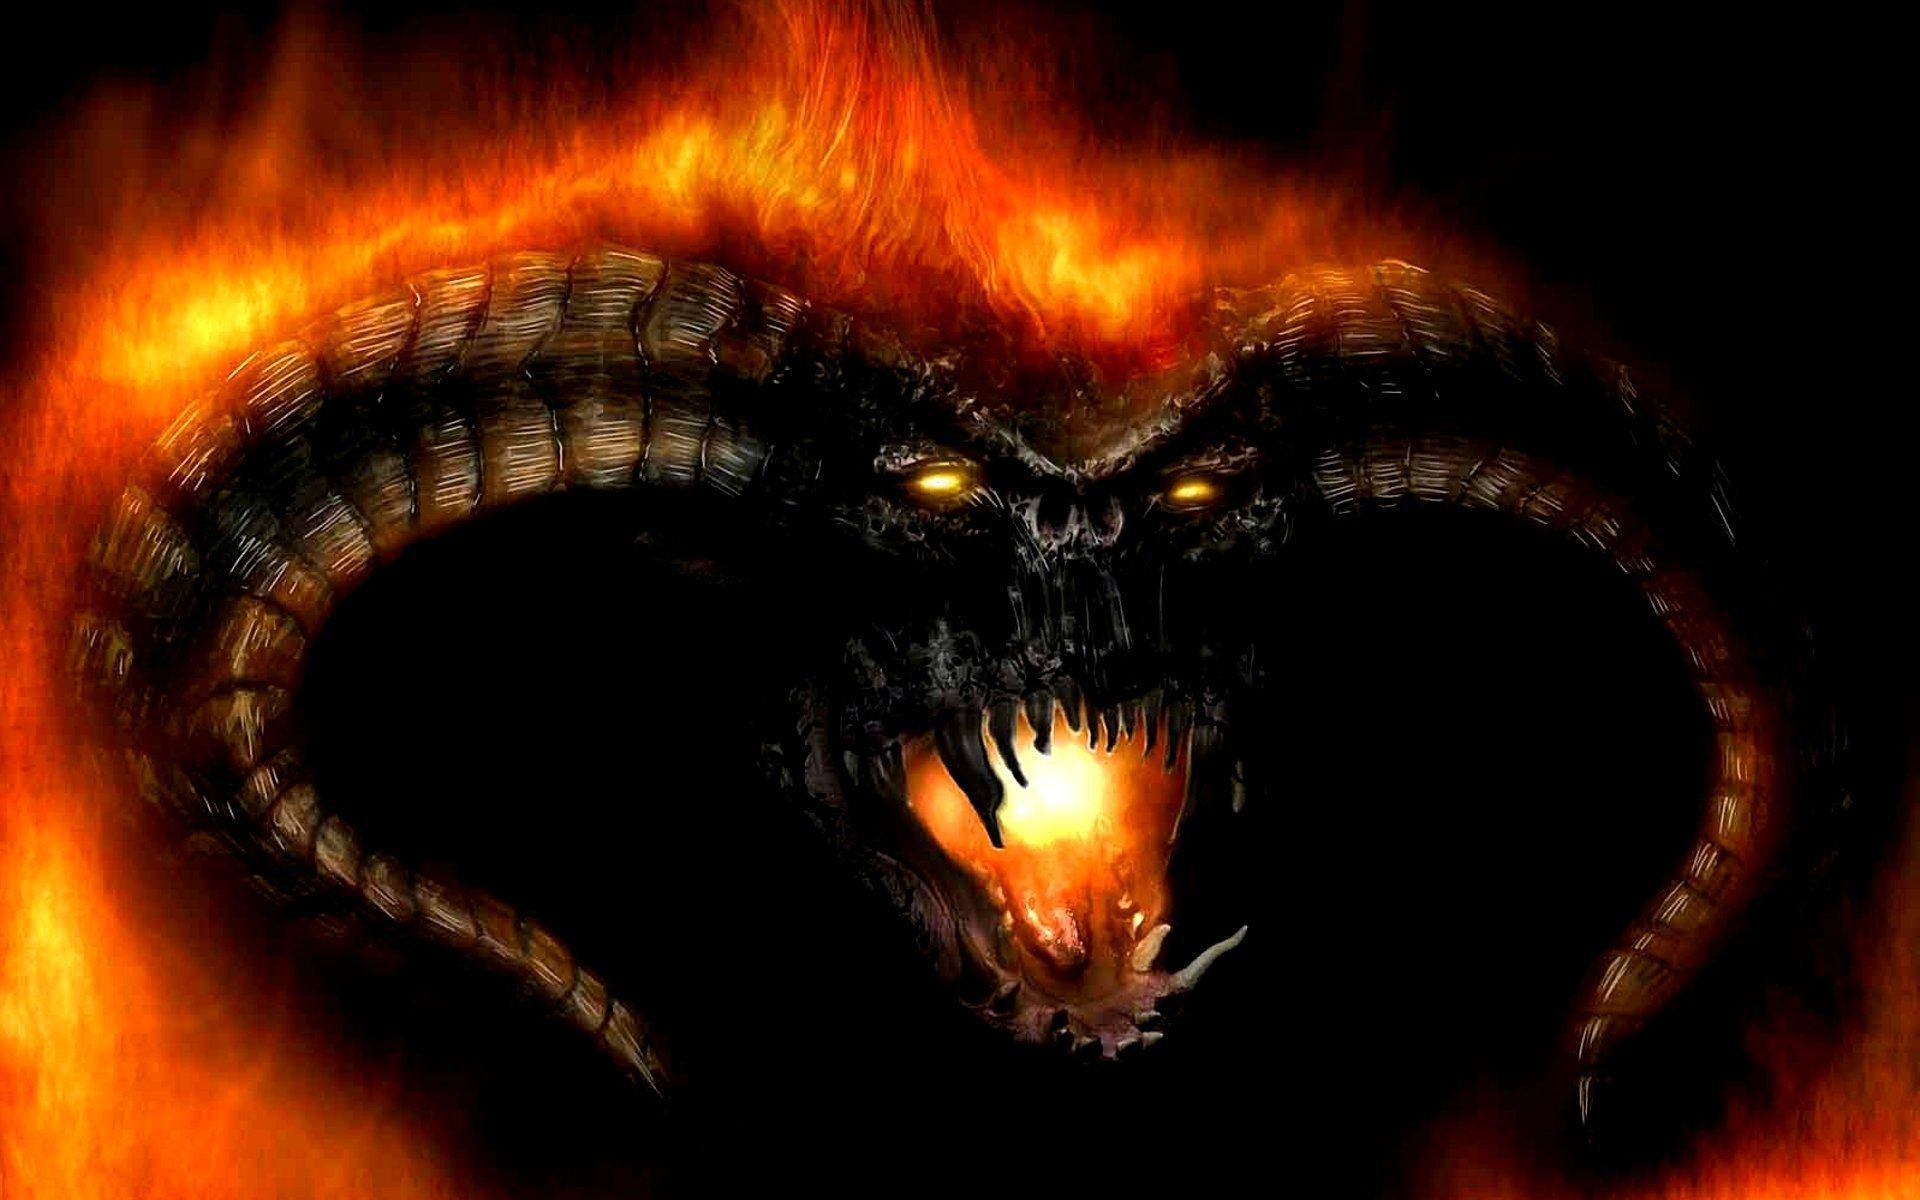 Balrog HD Wallpaper